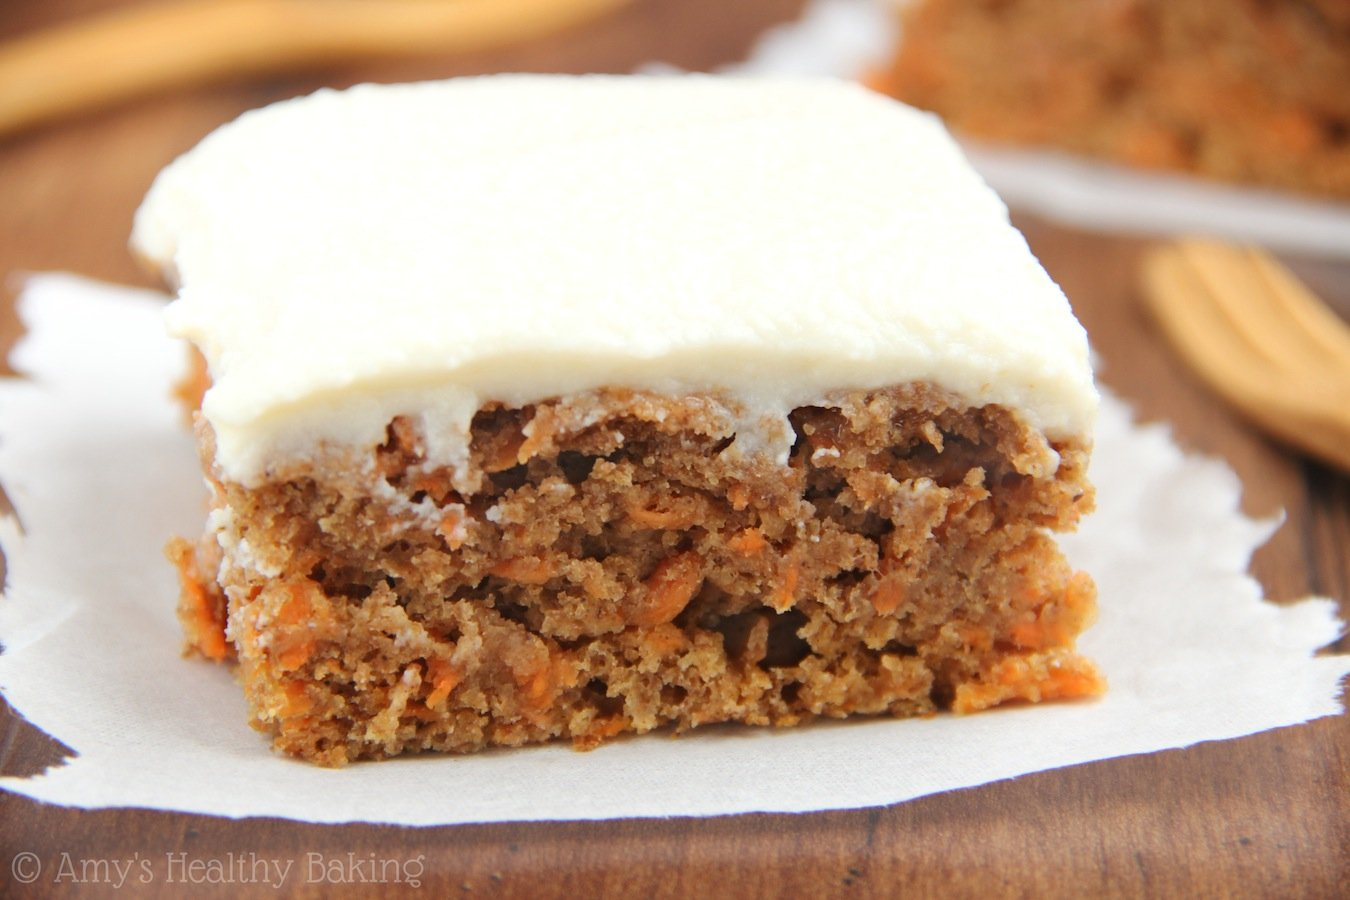 Easy Carrot Cake Recipe With Oil